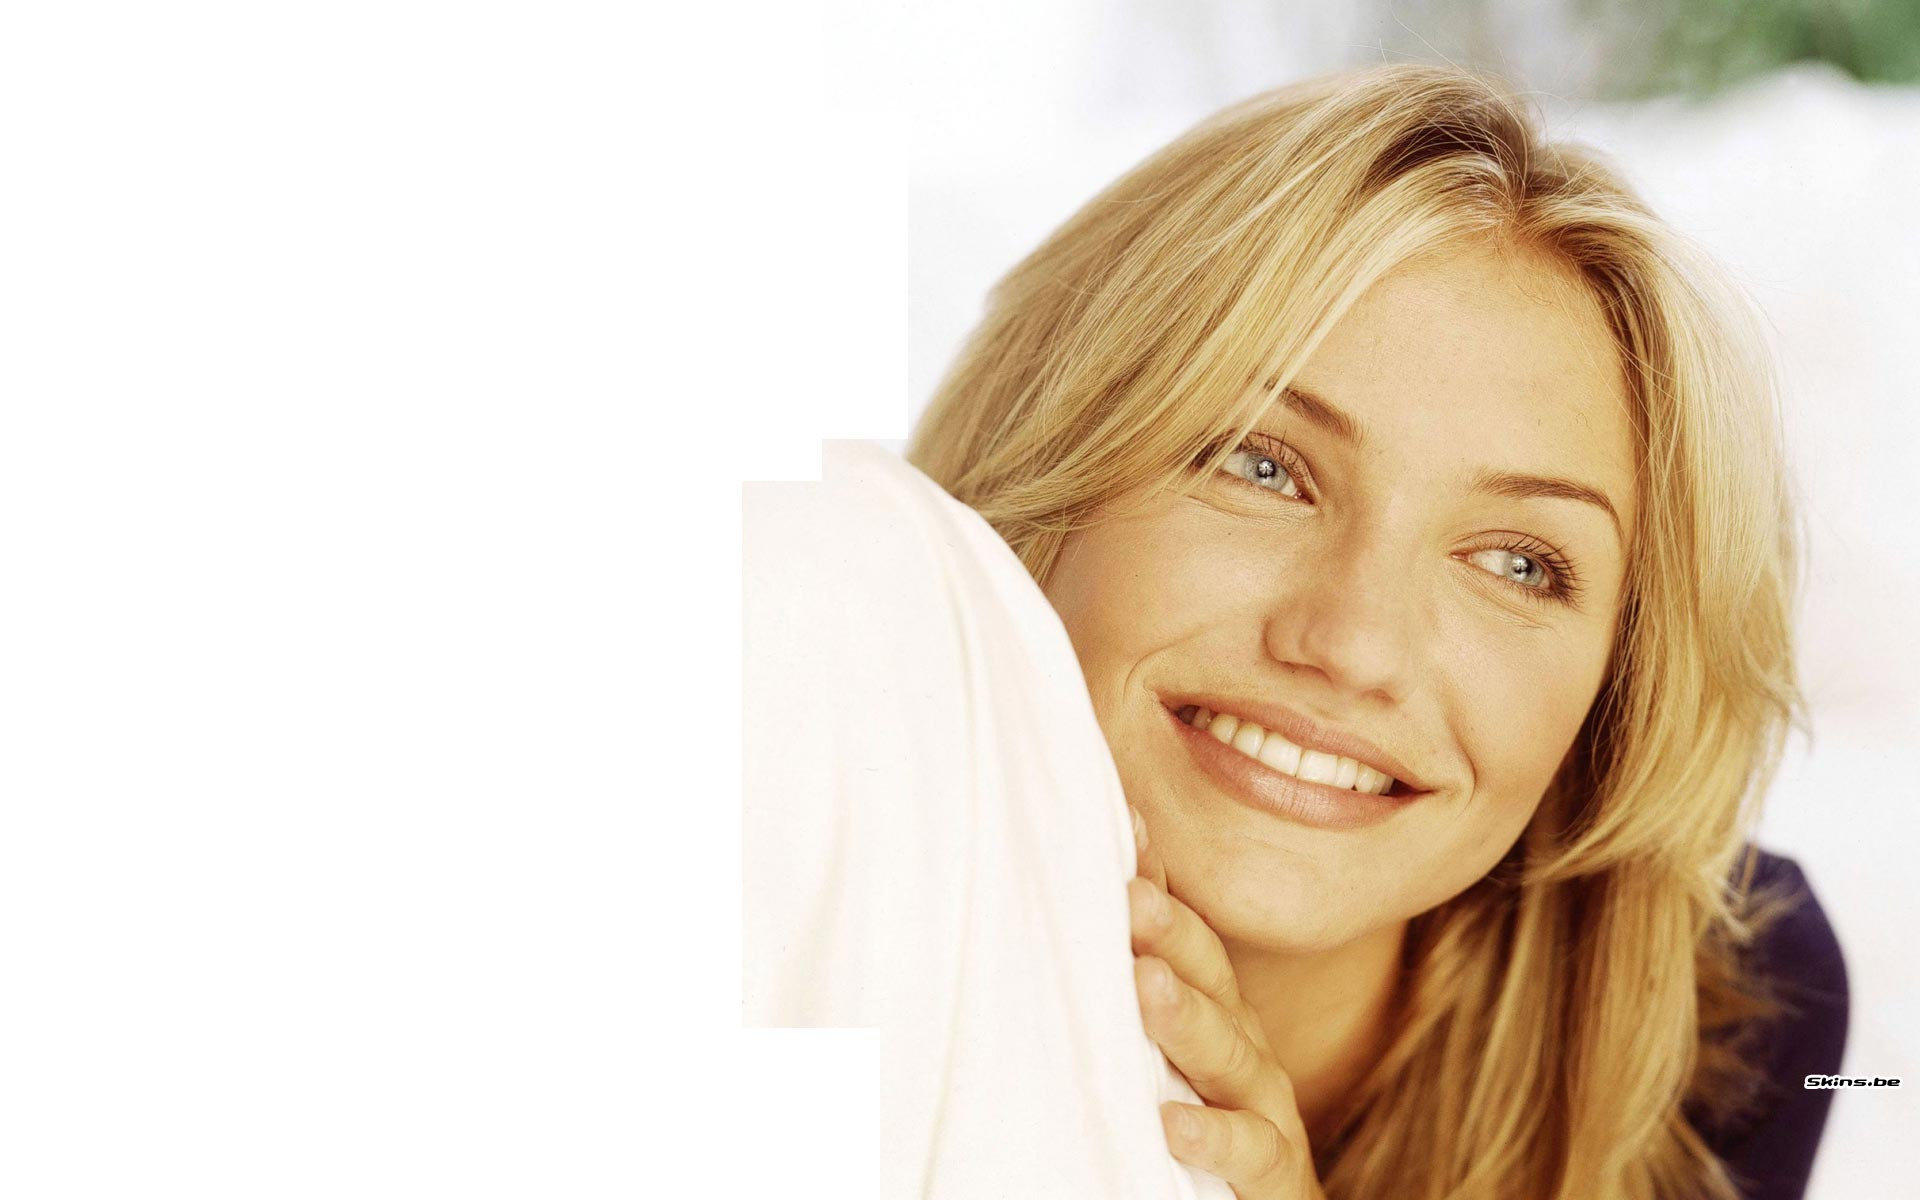 cameron diaz 3 150×150 Cameron Diaz Wallpapers HD Wallpaper